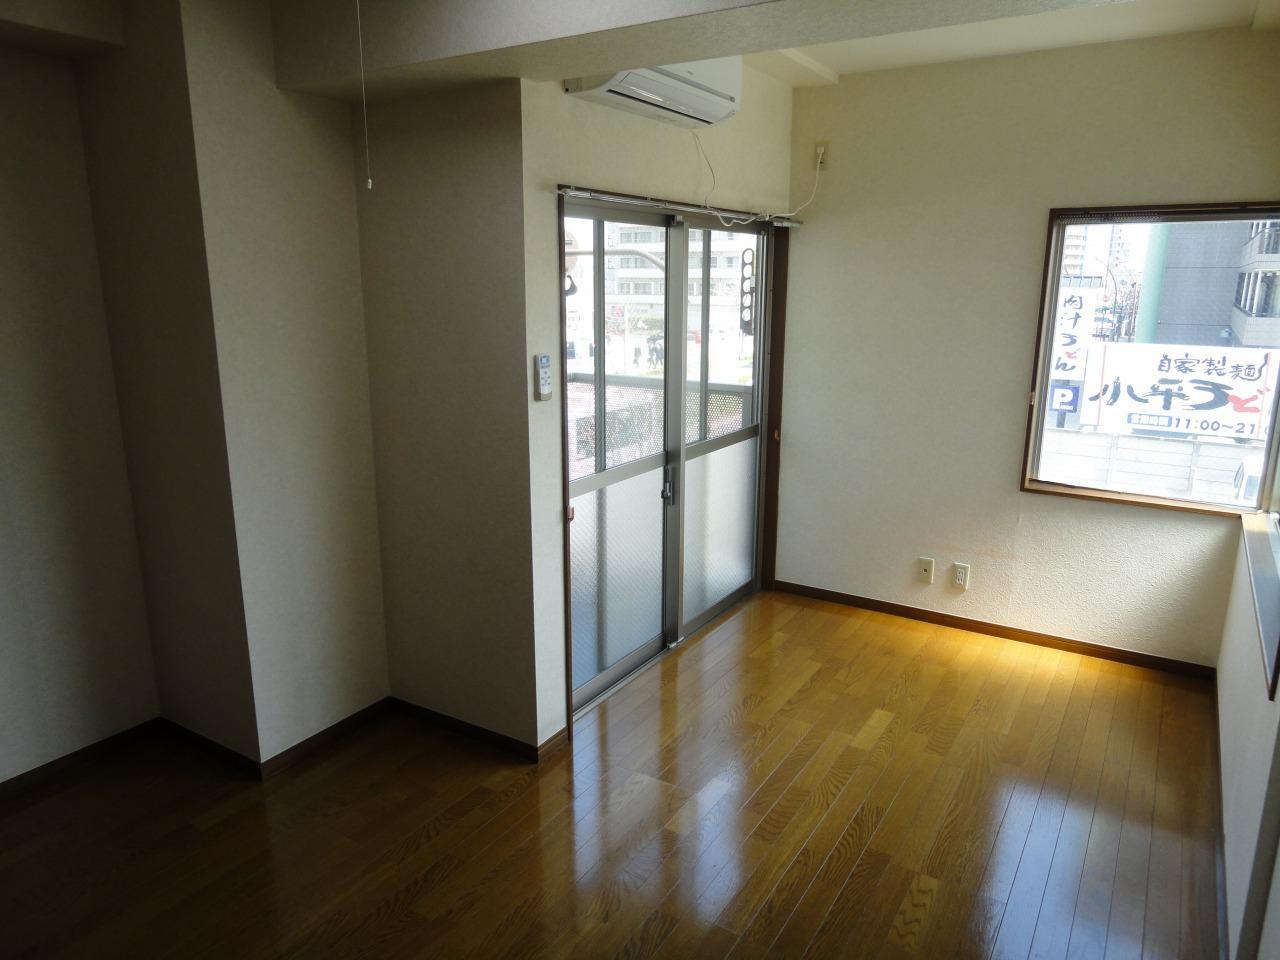 Budget Rentals in Tokyo for $500 A Month - Blog